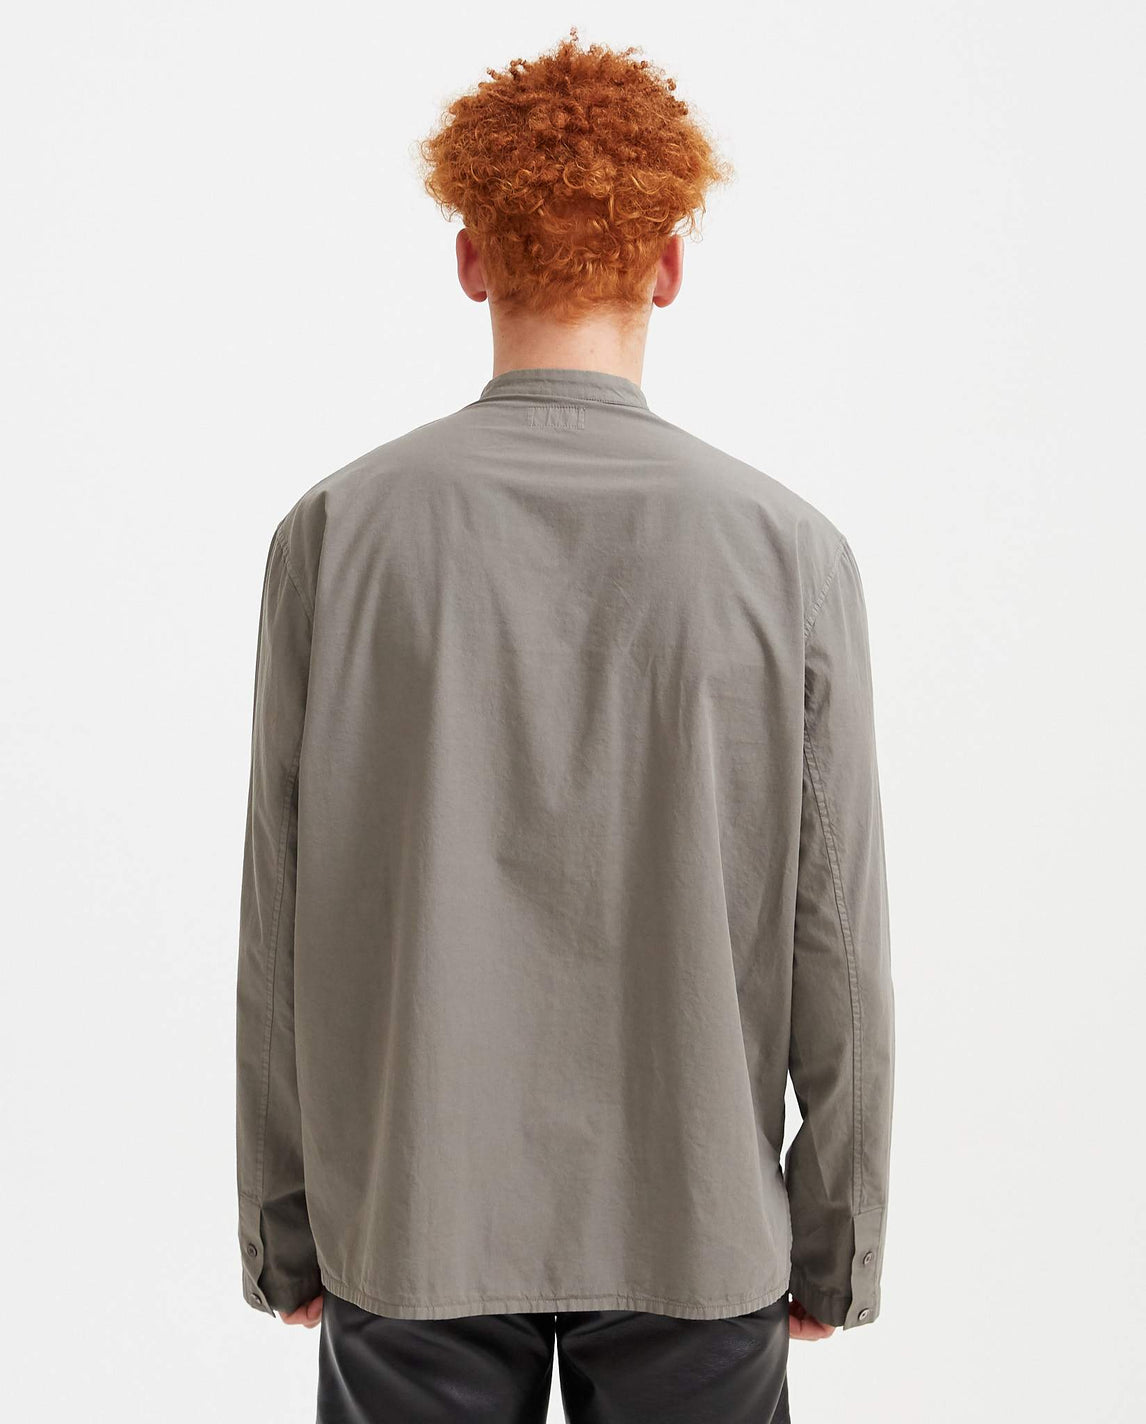 Long Sleeve Blouse Top - Grey MENS LEMAIRE